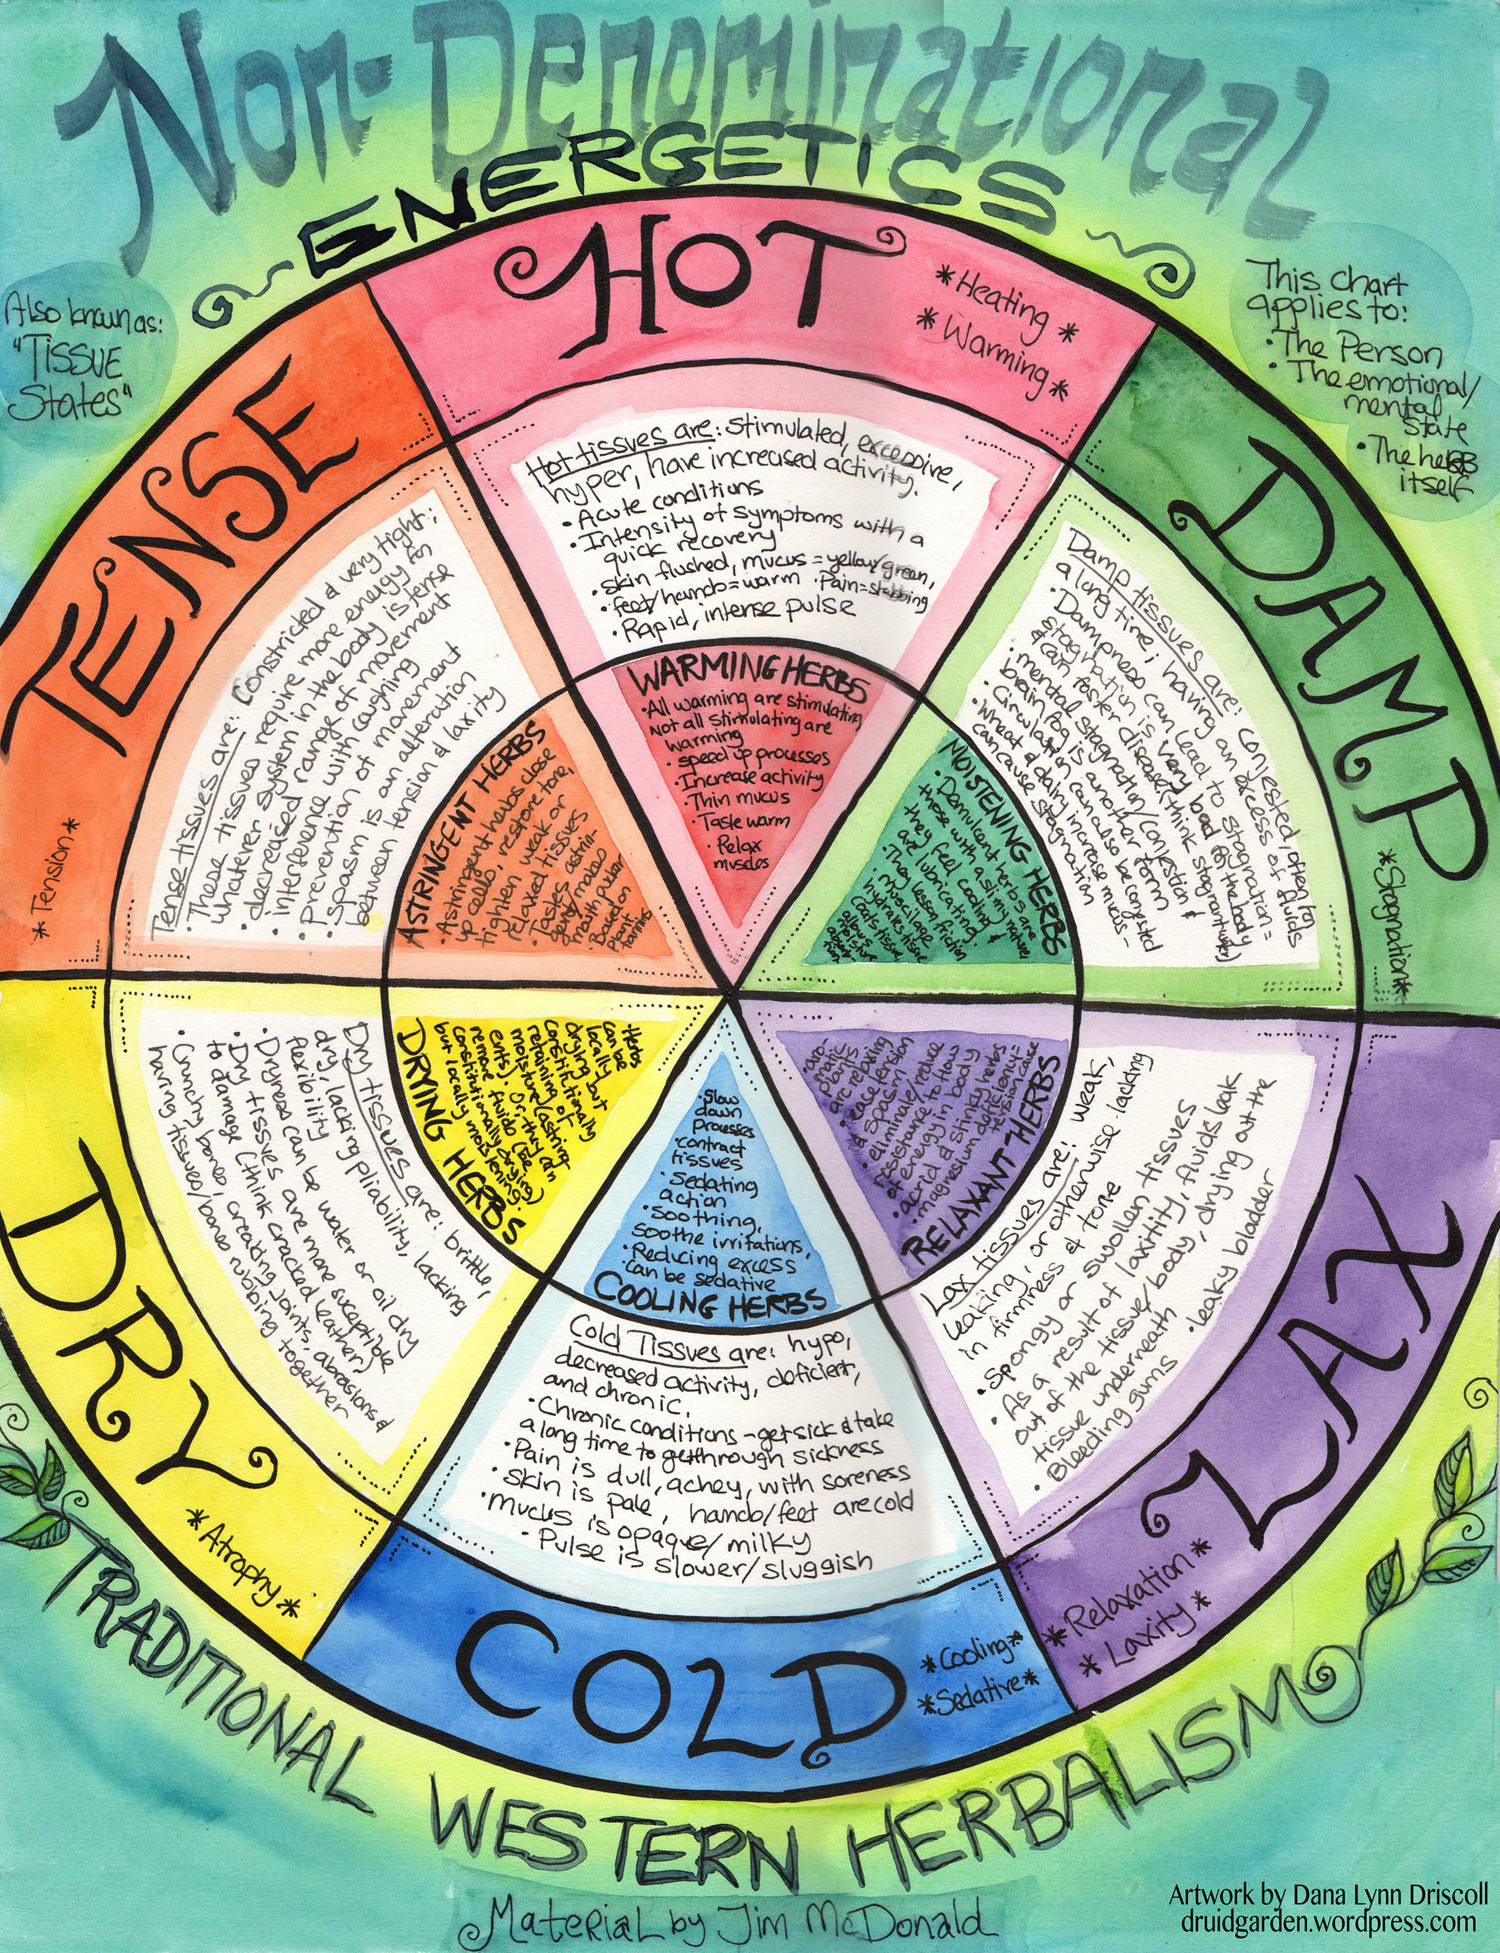 http://druidgarden.files.wordpress.com/2014/04/tissue_states_wheel2.jpg